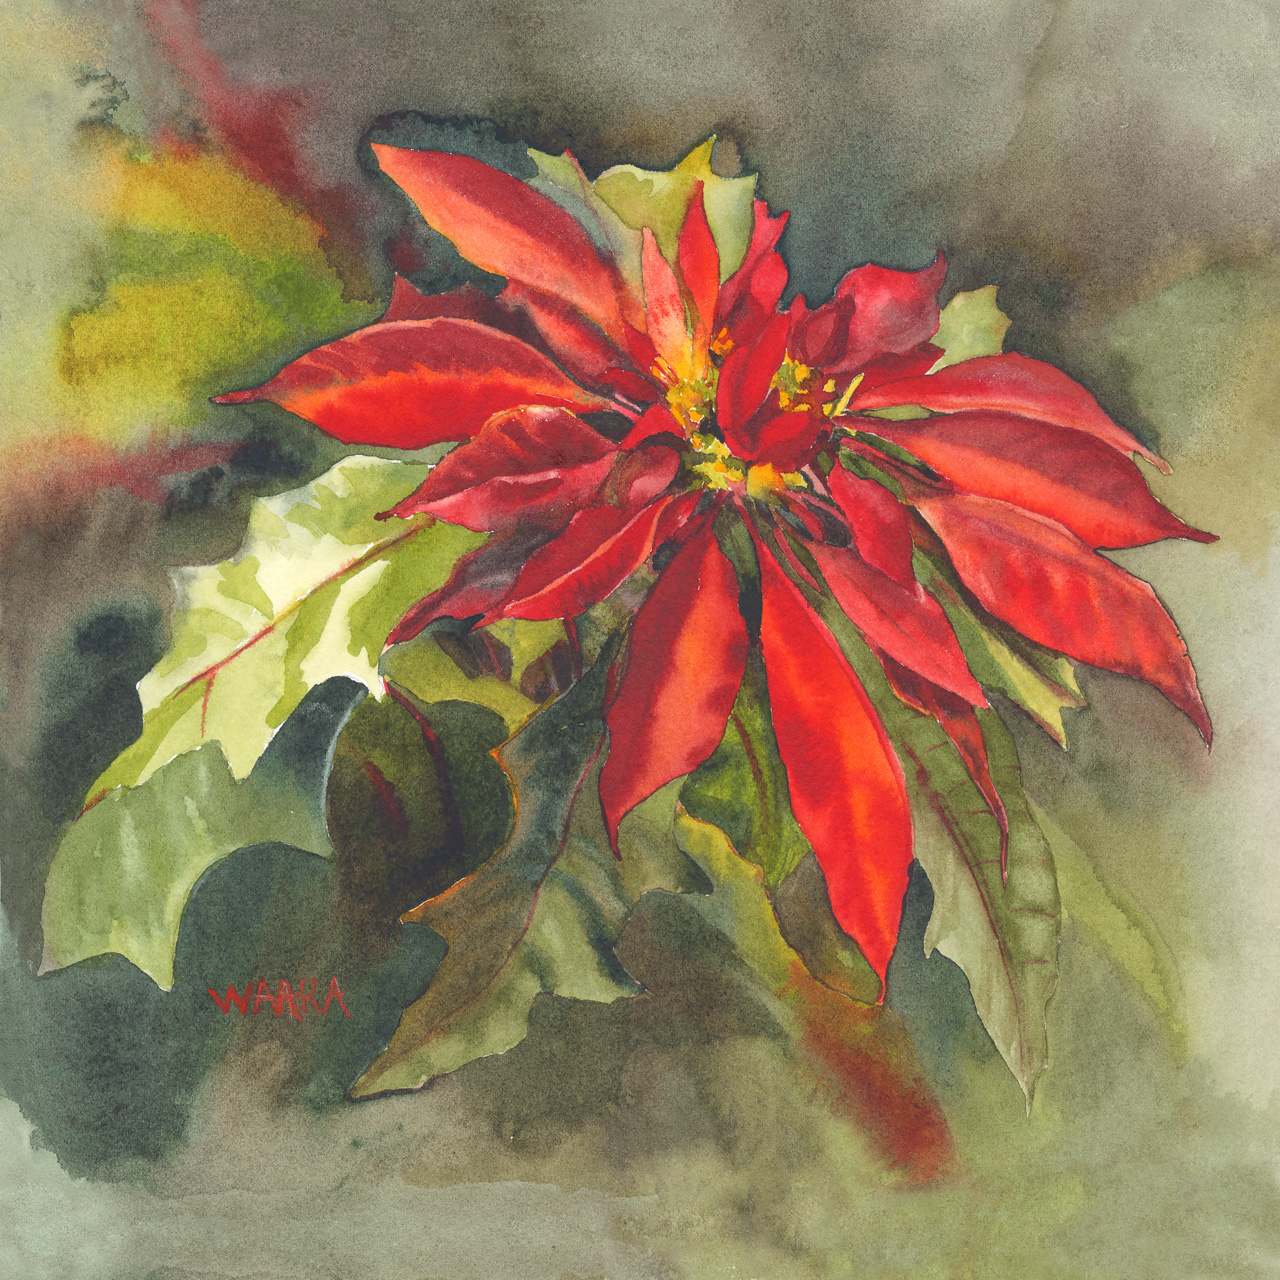 Watercolor painting of a poinsettia plant